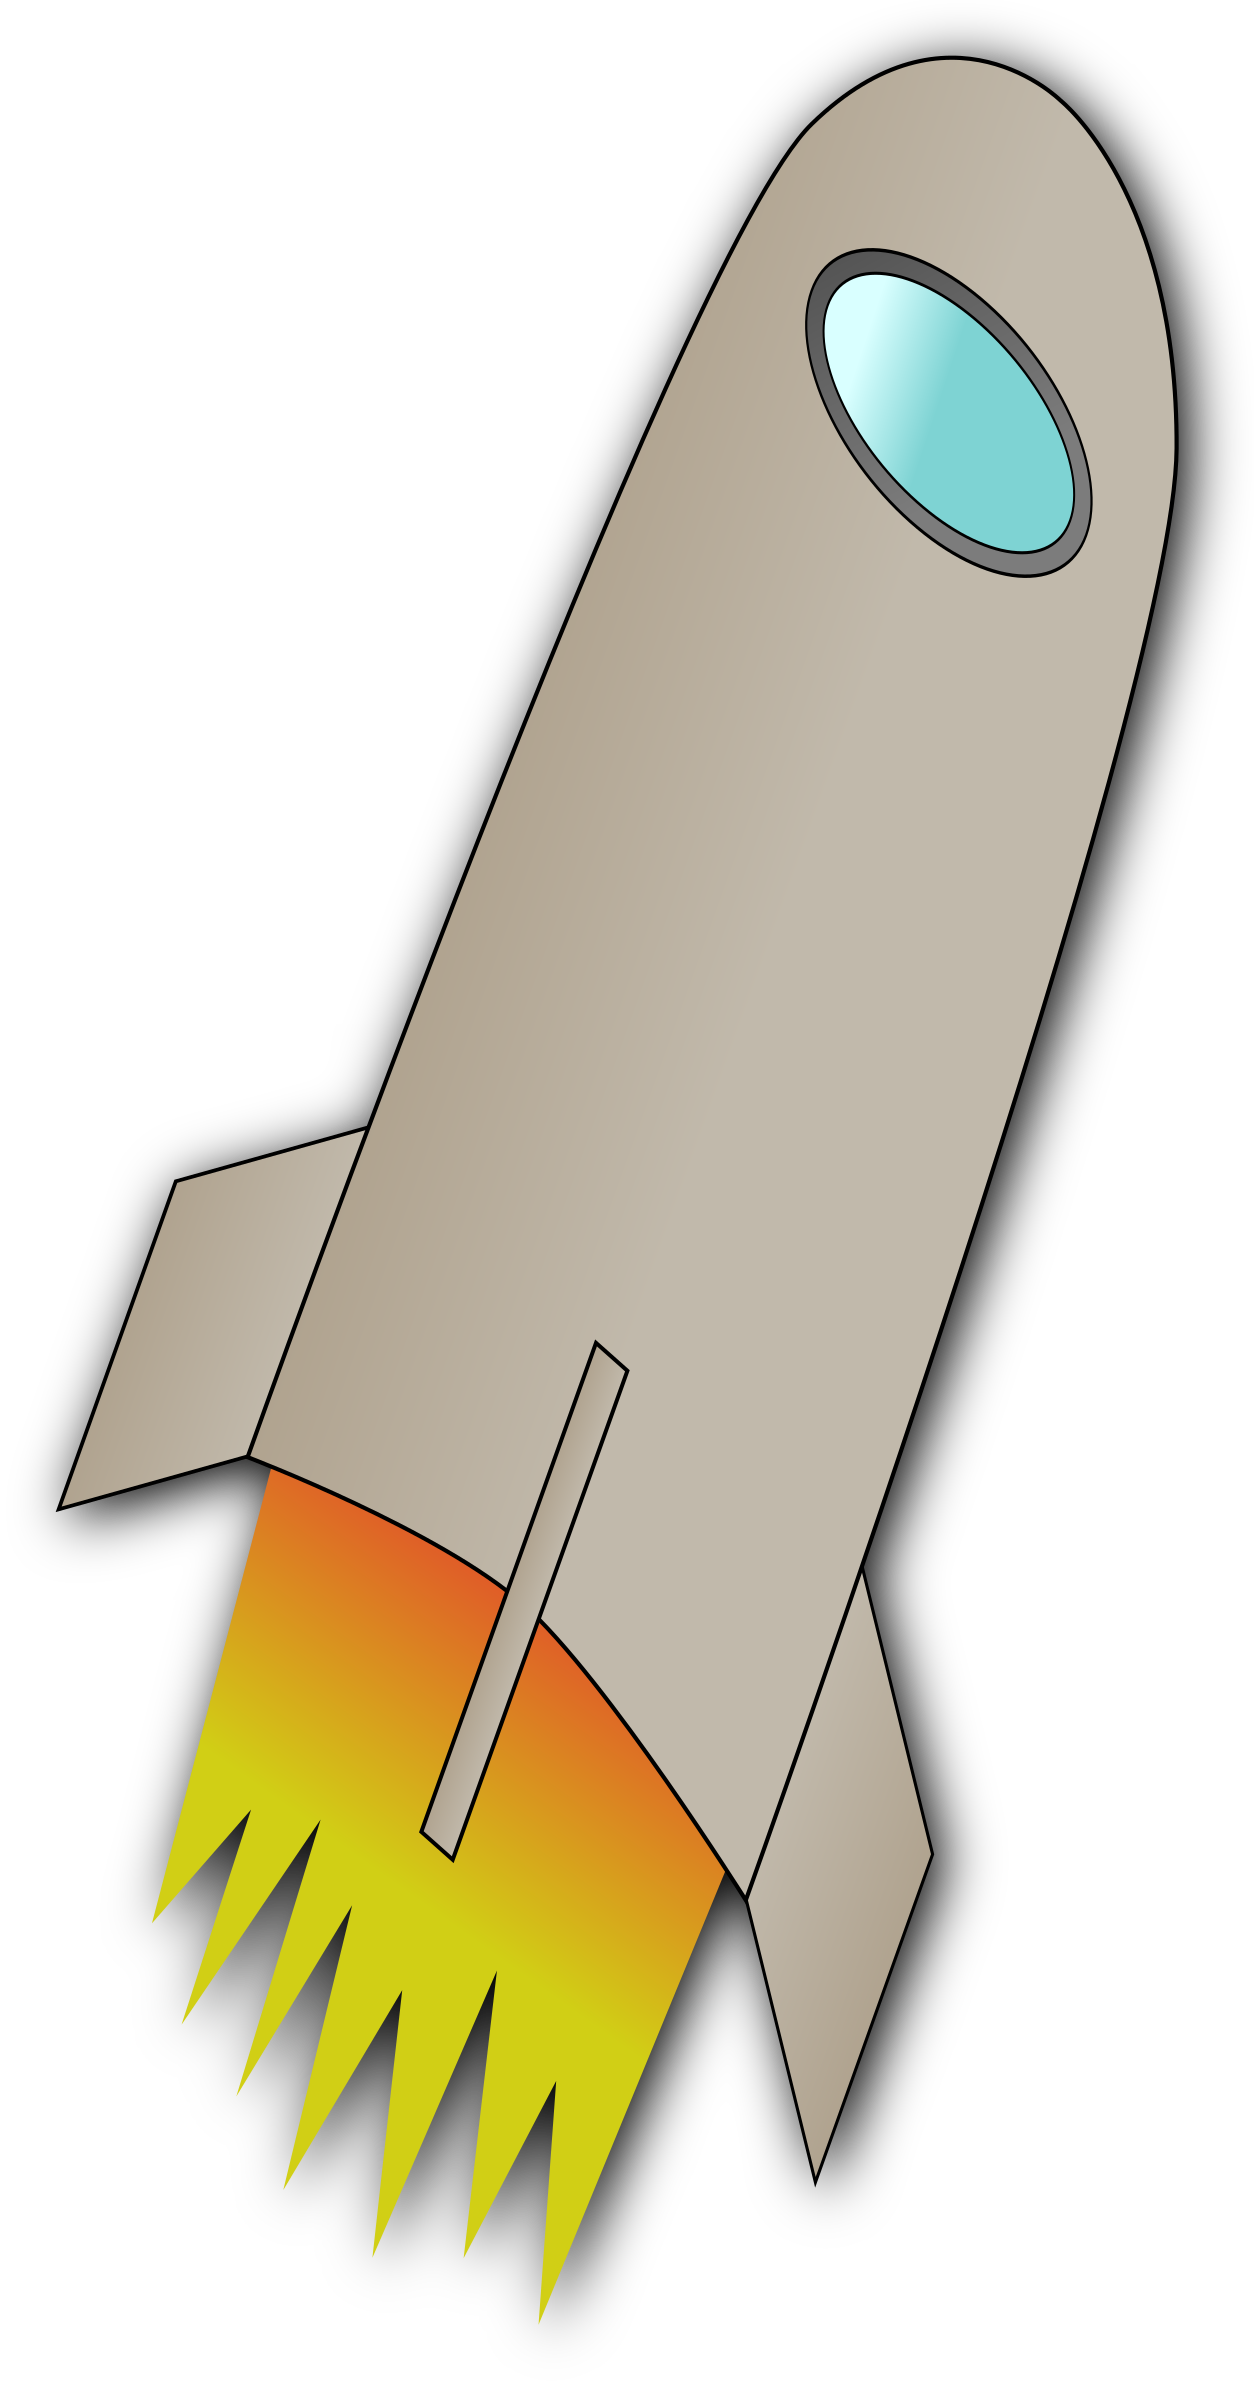 Space rocket whit fire. Spaceship clipart spacerocket